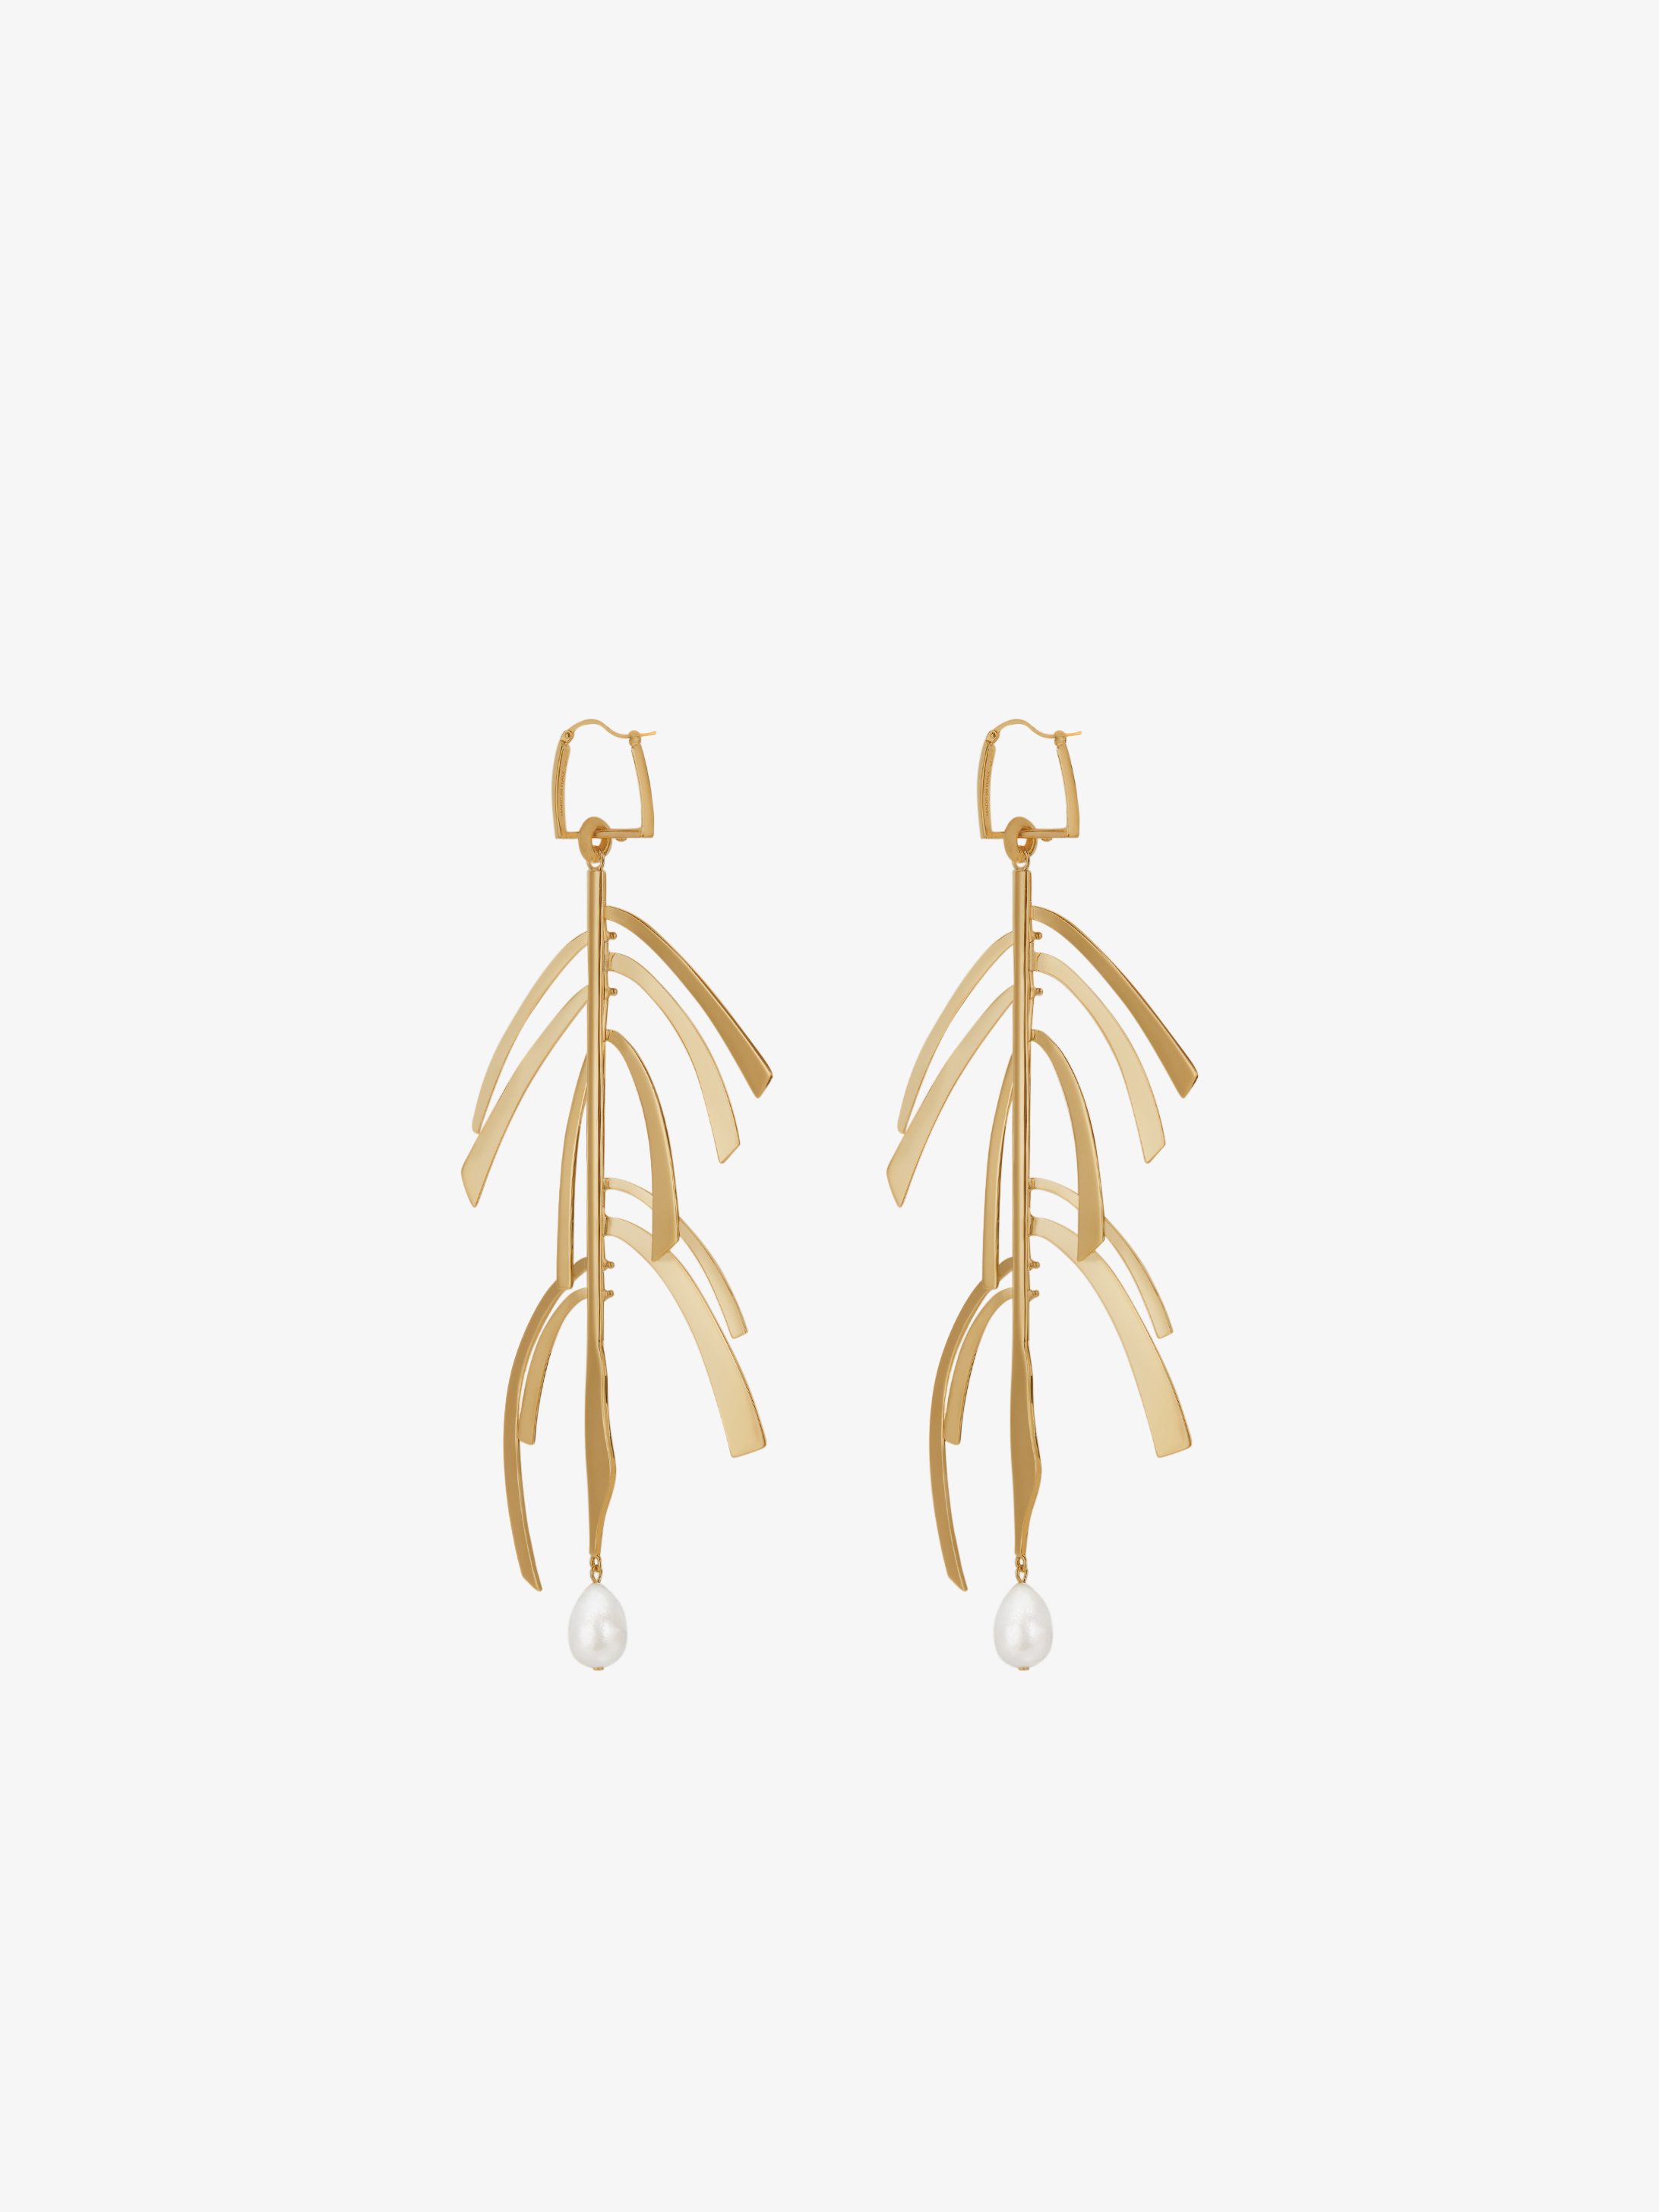 Harp earrings with pearls